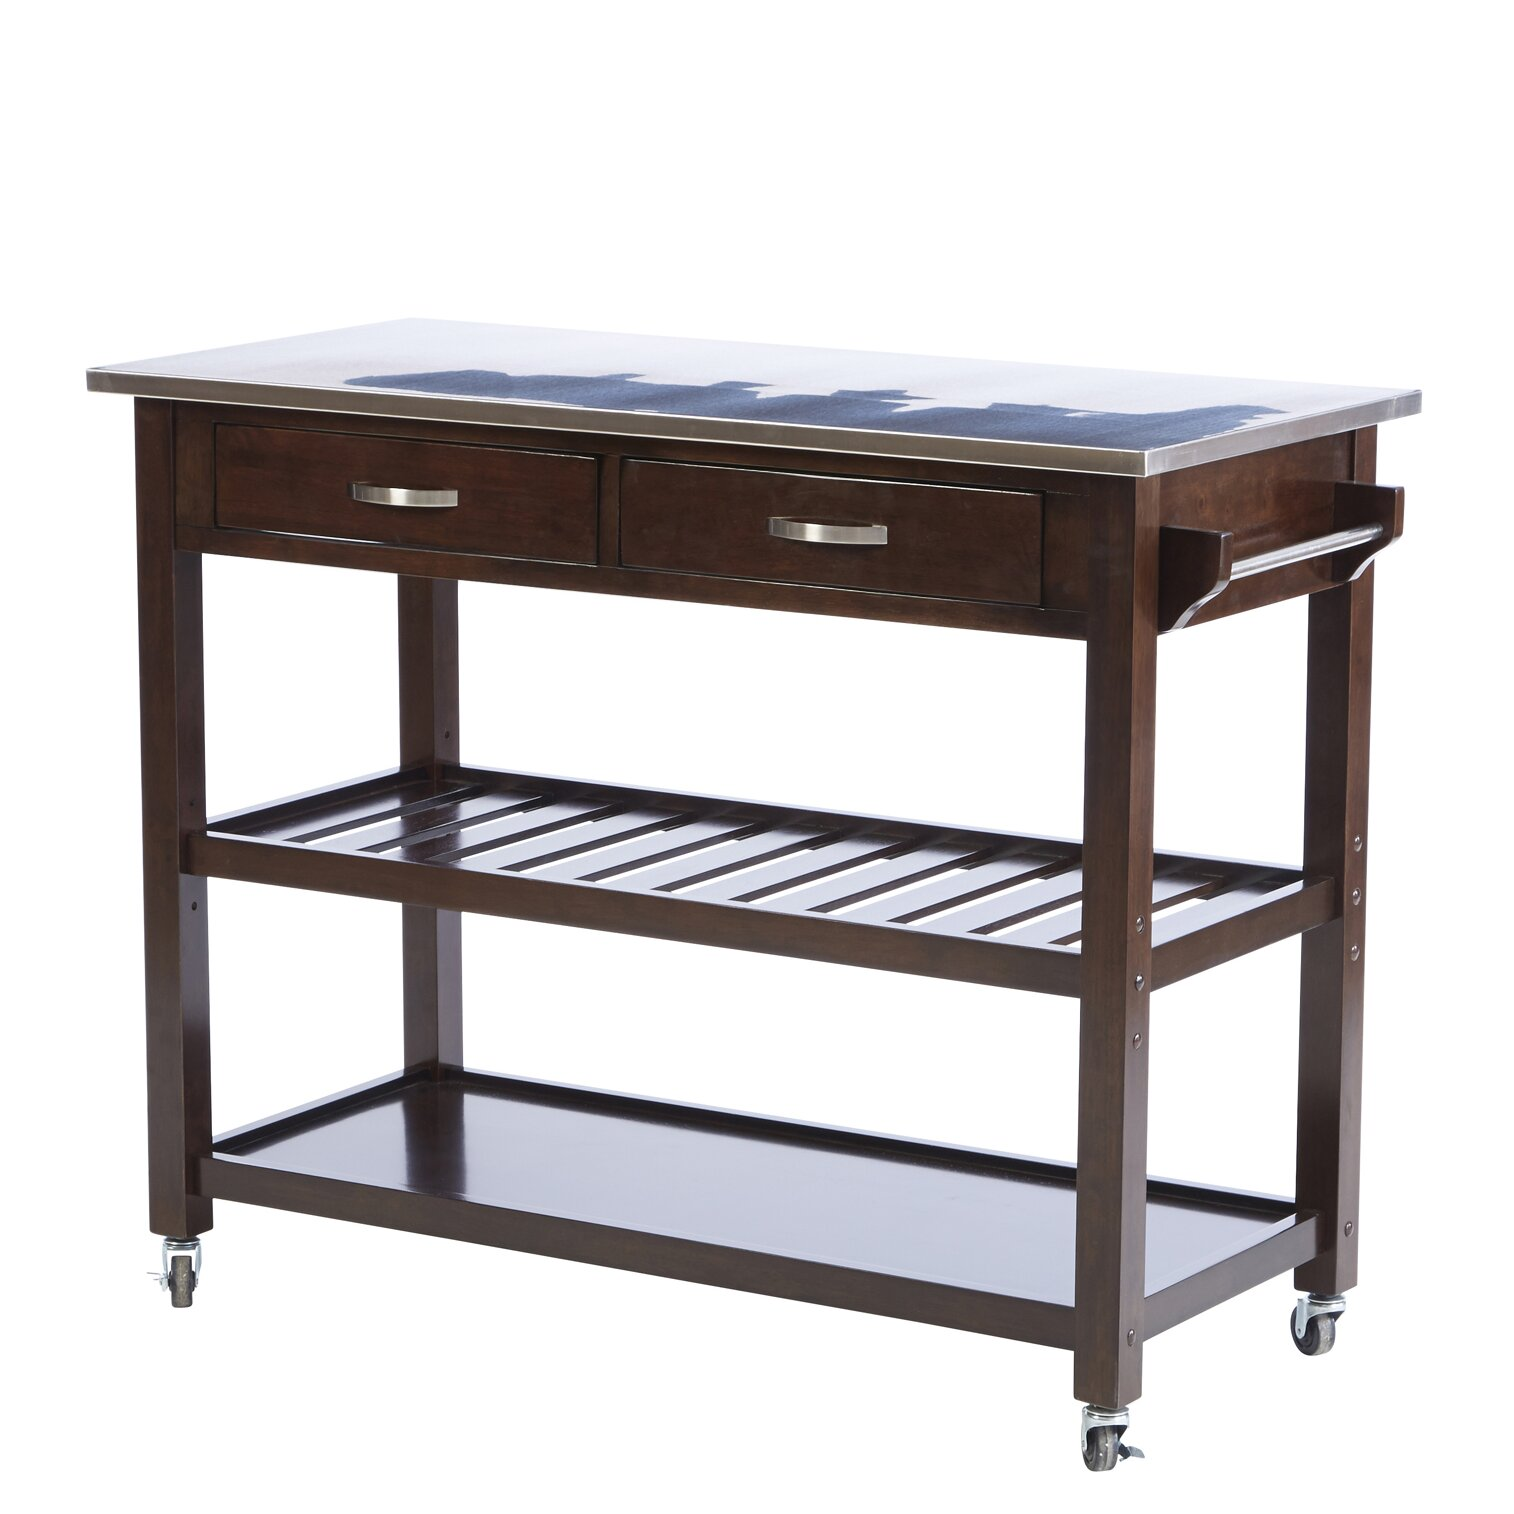 kitchen island stainless steel top three posts byrnedale kitchen island with stainless steel top reviews wayfair 8632